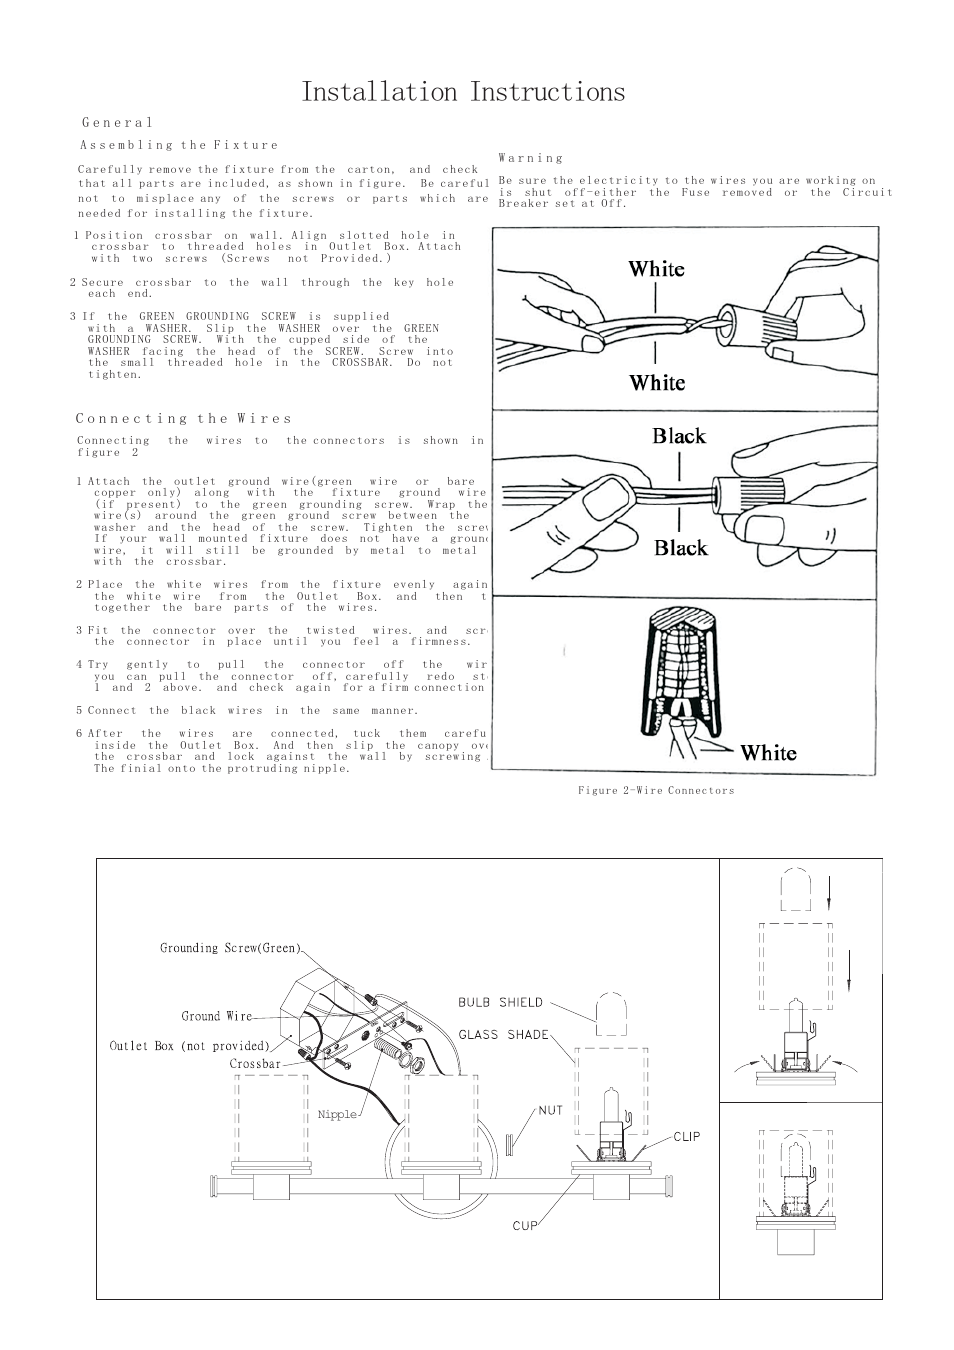 Hudson Valley Lighting SOUTHPORT 2055 User Manual | 1 page